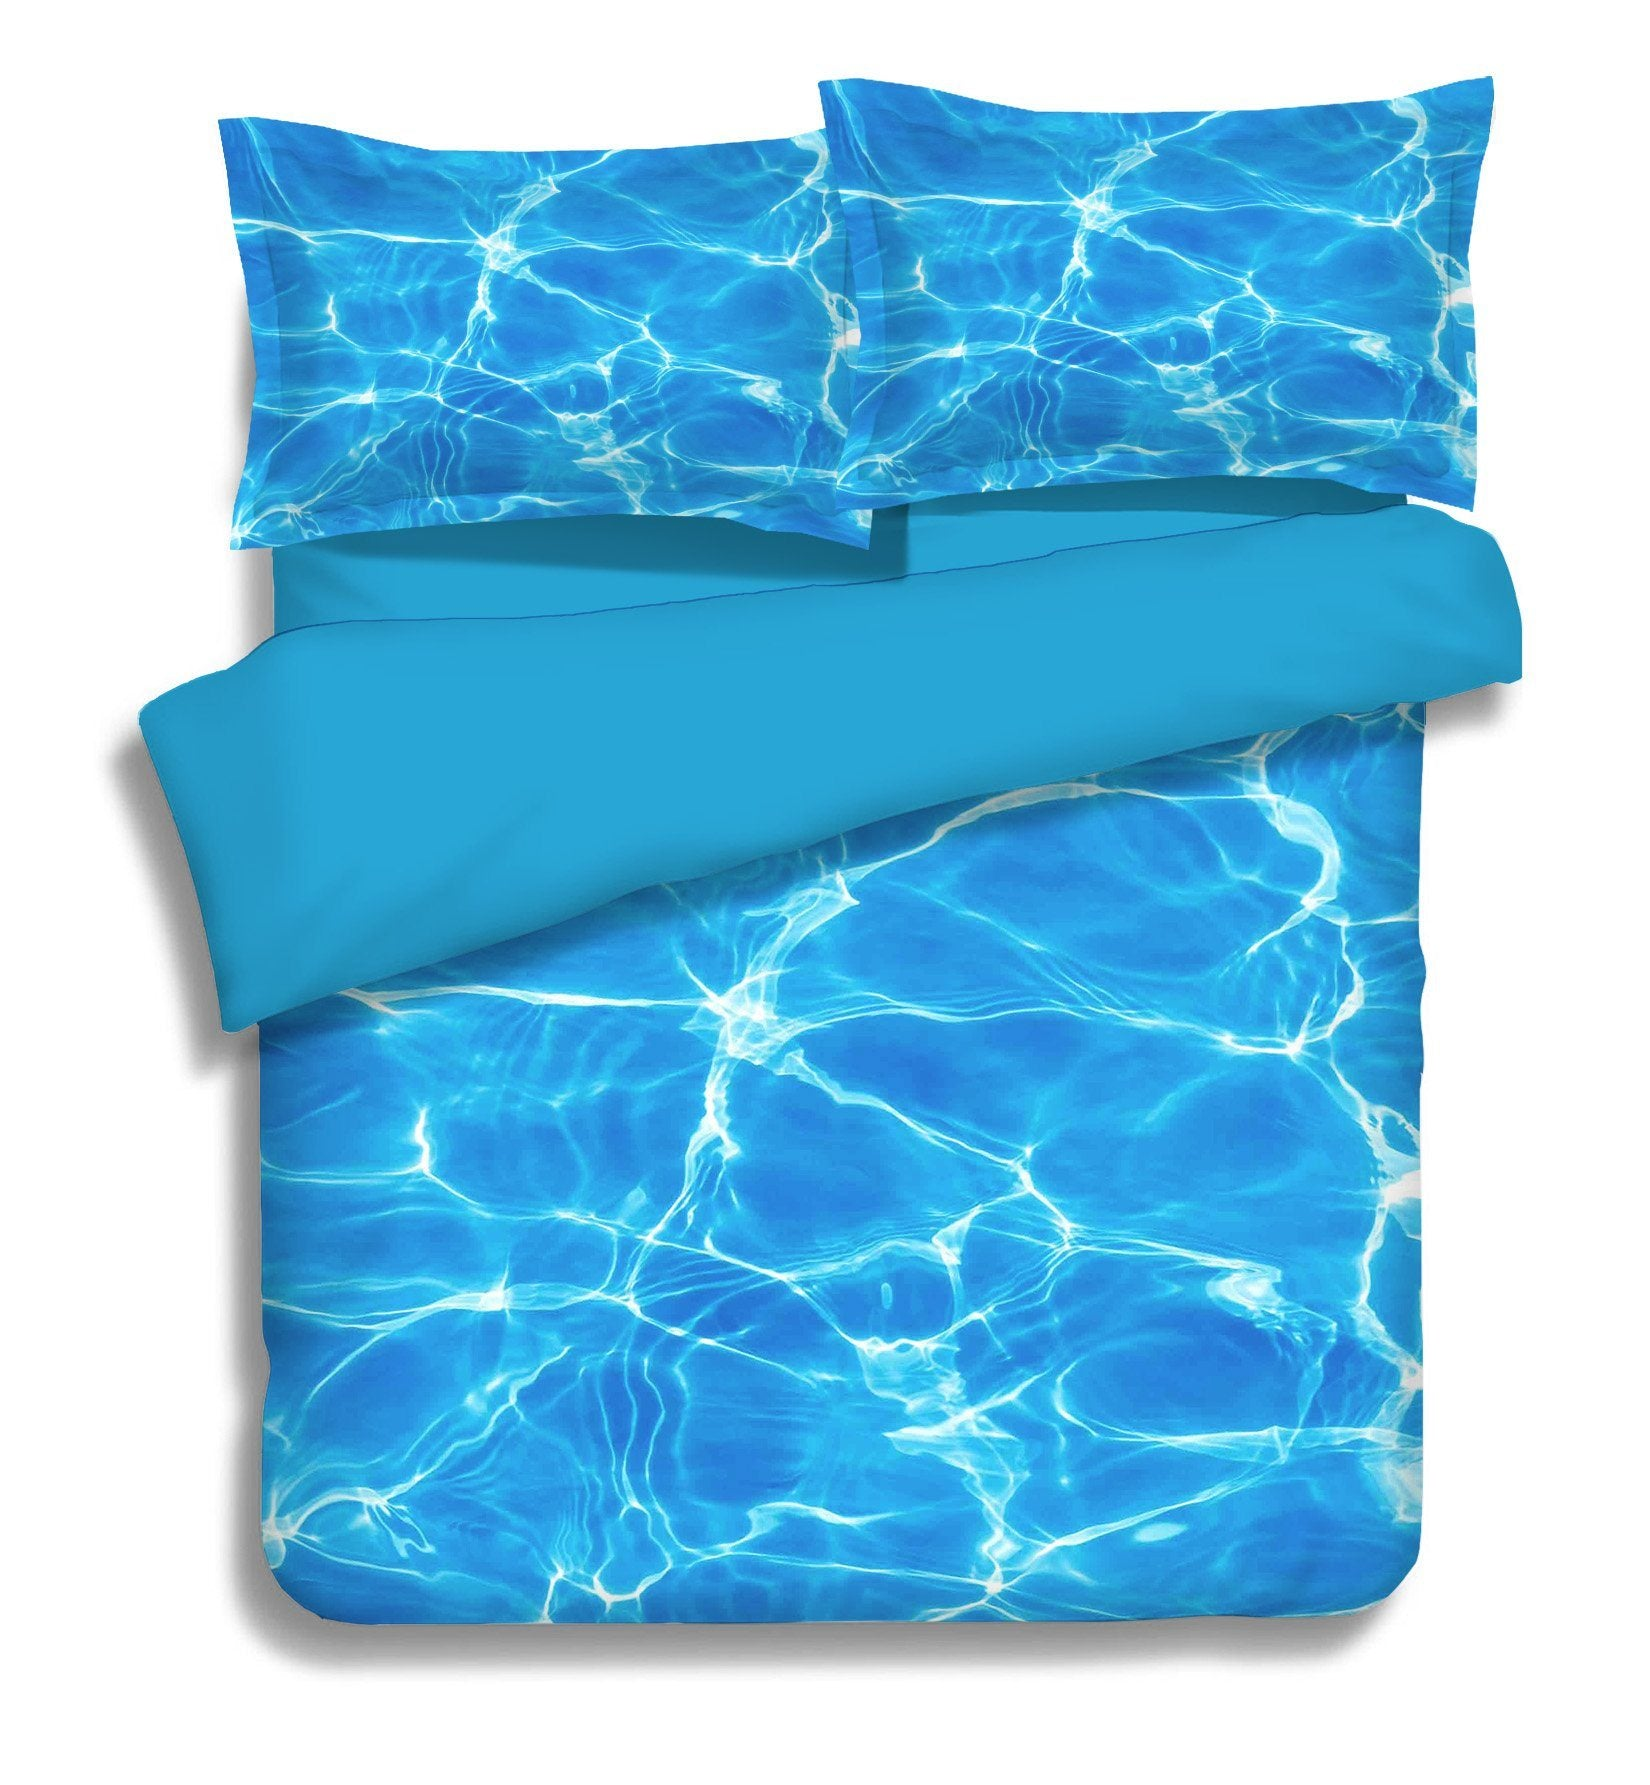 3D Blue Shiny Water 256 Bed Pillowcases Quilt